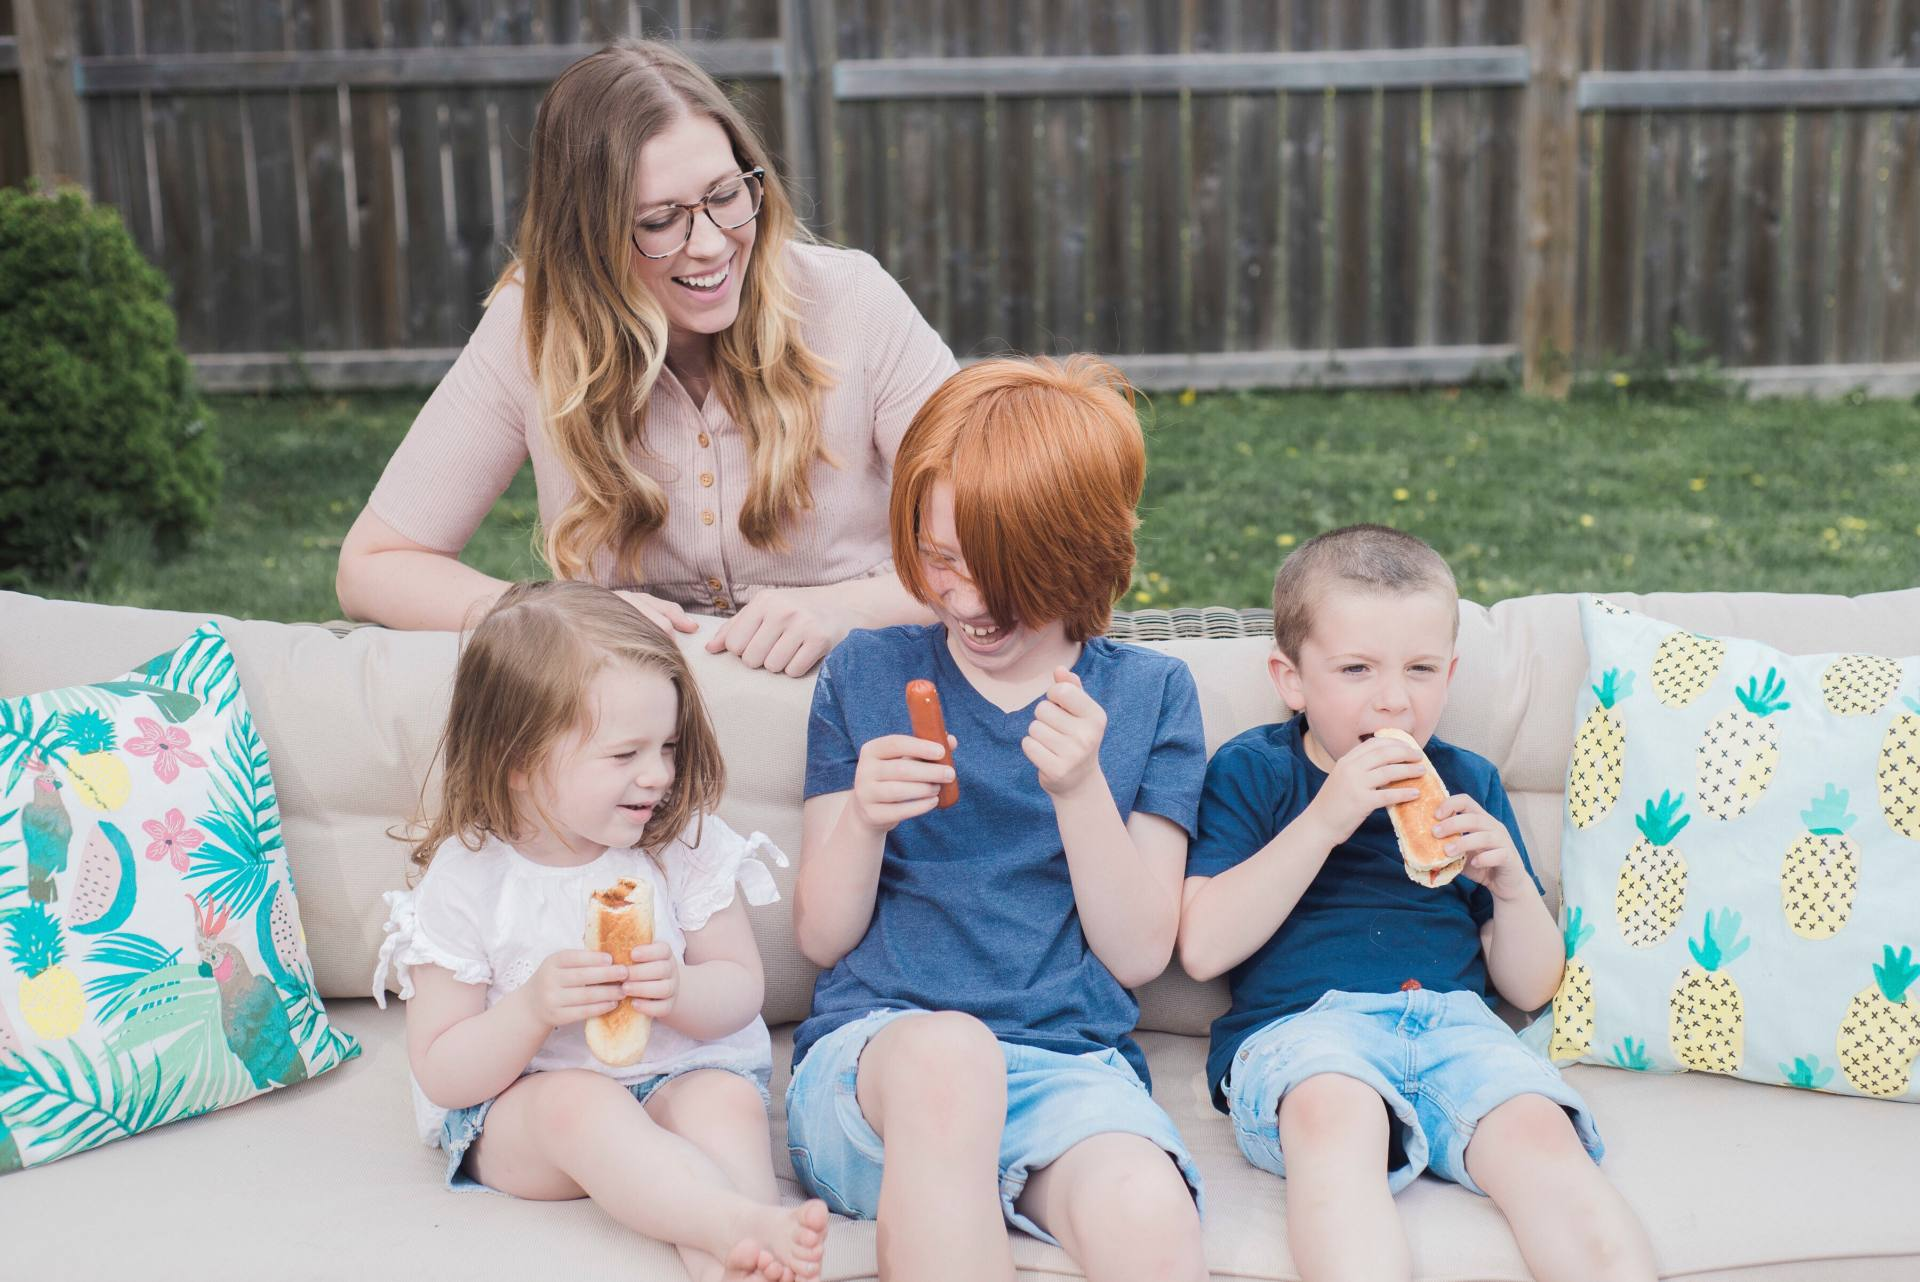 Real Food Parents Can Feel Good About Feeding Their Kids @mapleleaffoods